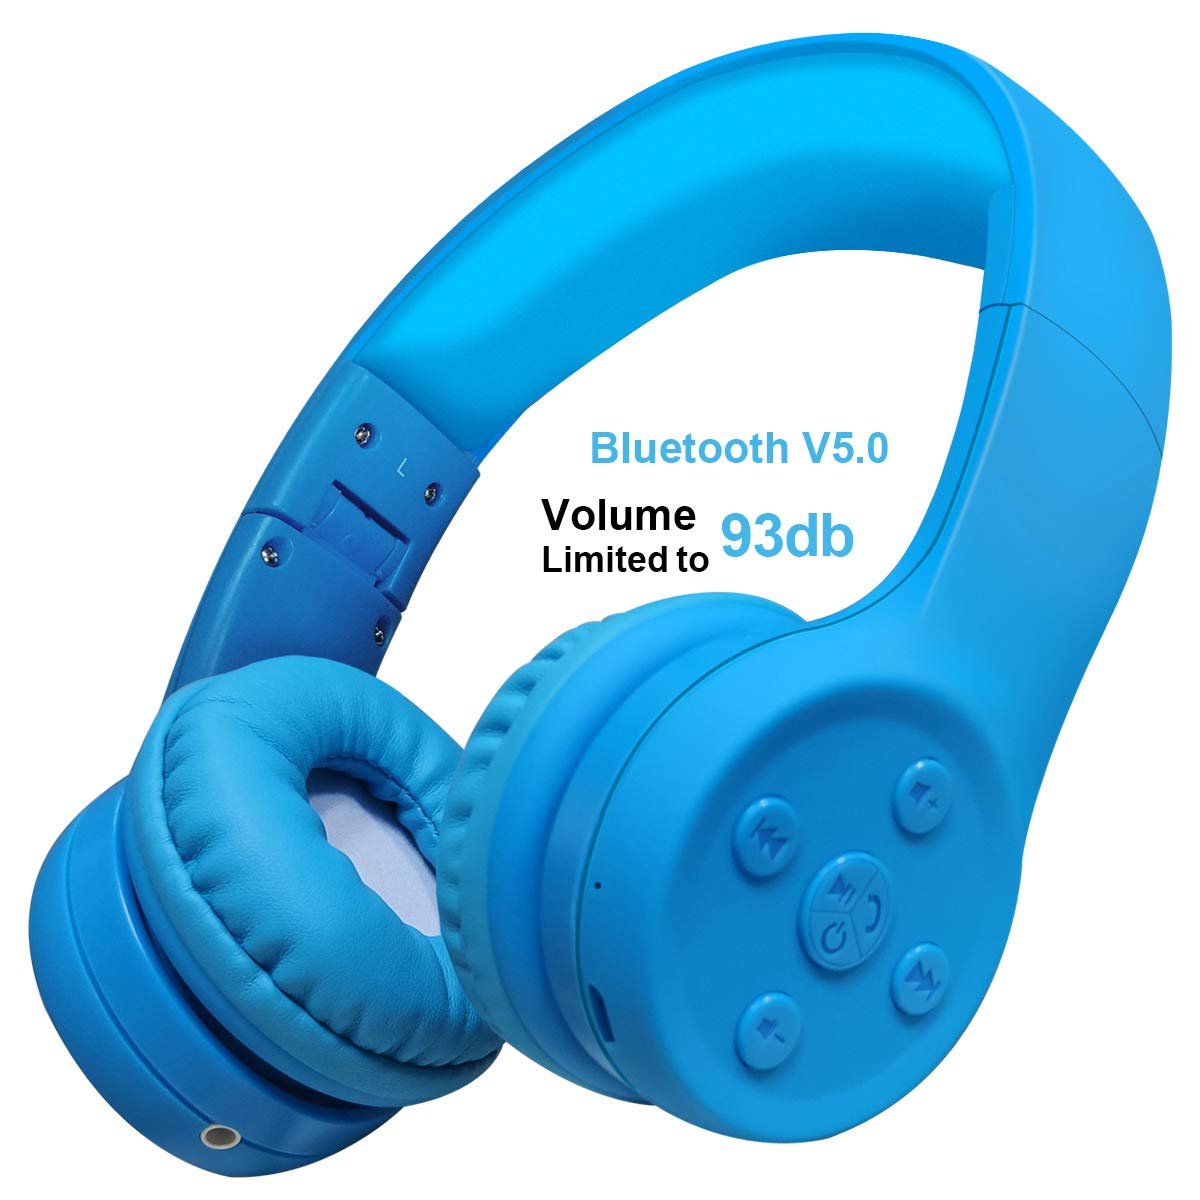 Yusonic Kids Bluetooth Headphones, Bluetooth V5.0 Foldable Volume Limited Kids Wireless Headphones with Built-in Microphone for Cell Phones TV Toddler Tablet Game School Boys Girls (Blue 2